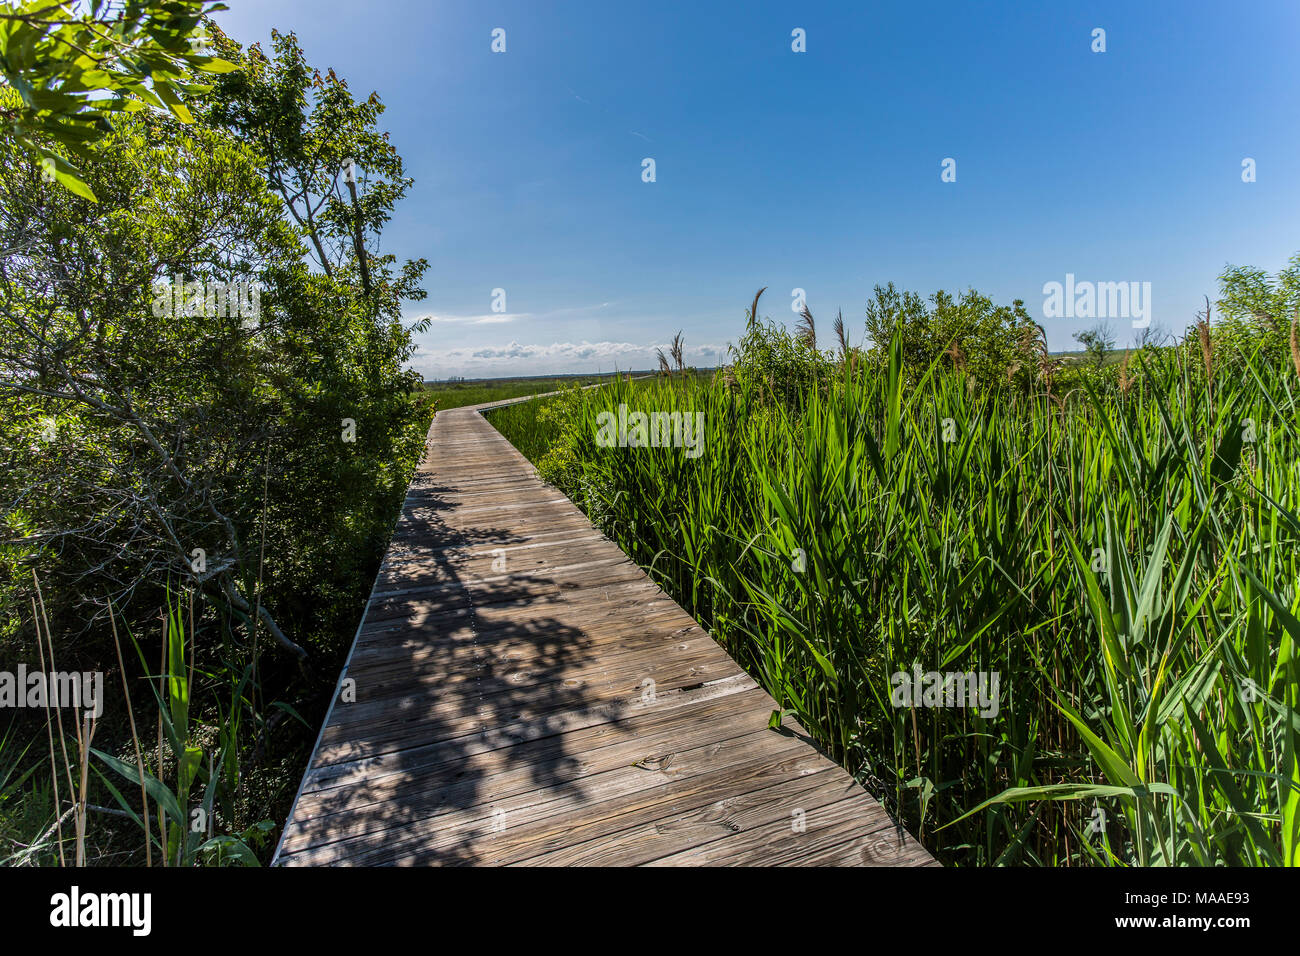 A coastal marshland vista frames a wooden boardwalk that bends and  reaches to a distant big blue sky horizon, Outer Banks, North Carolina. Stock Photo